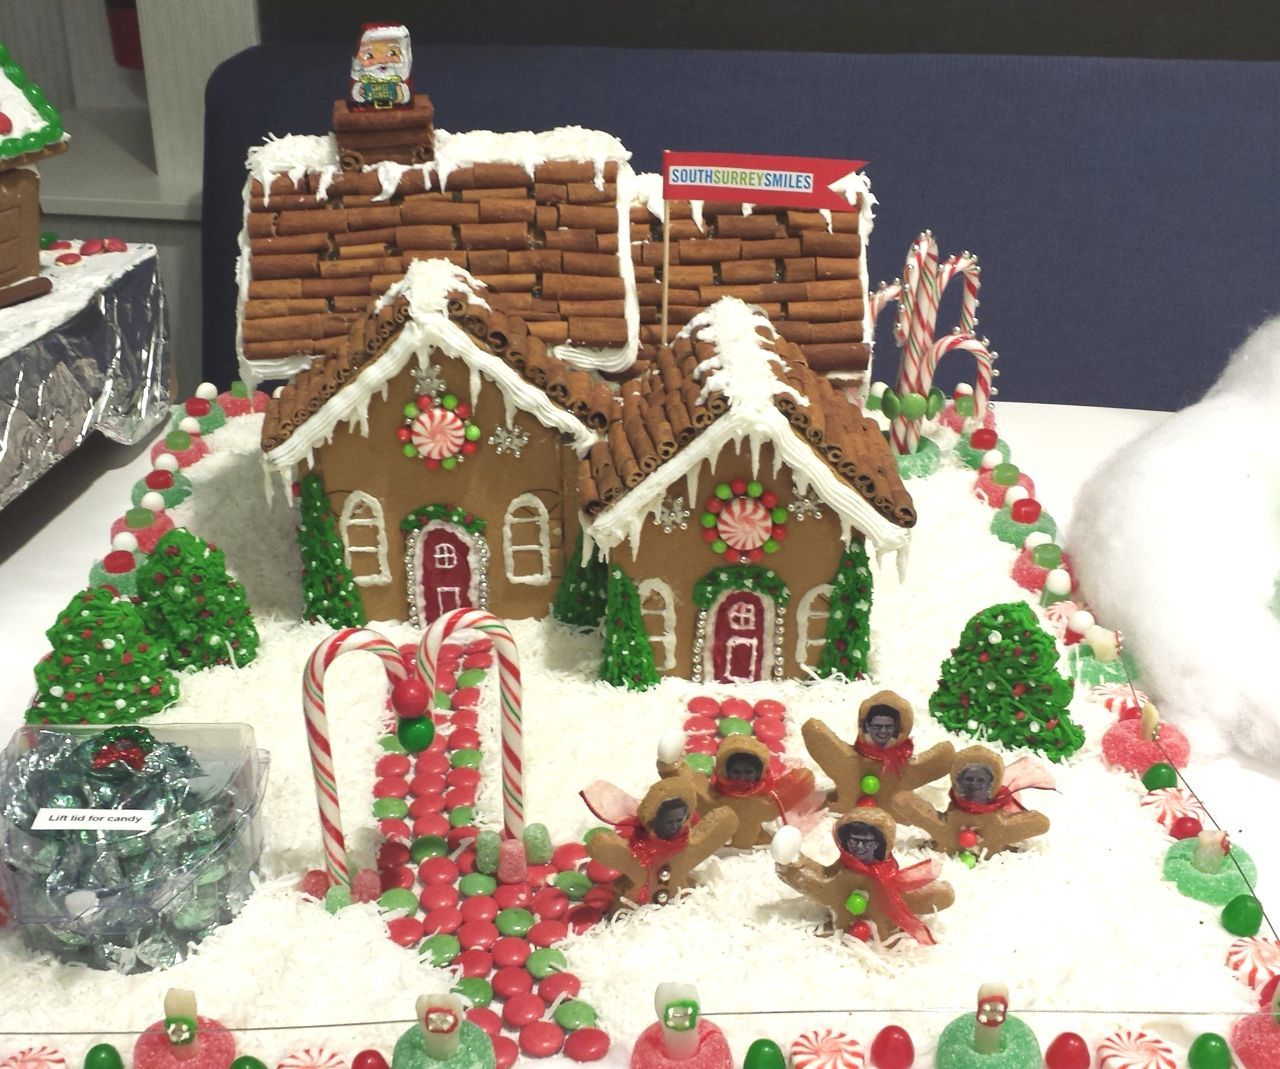 2nd Annual Gingerbread House Contest South Surrey Smiles